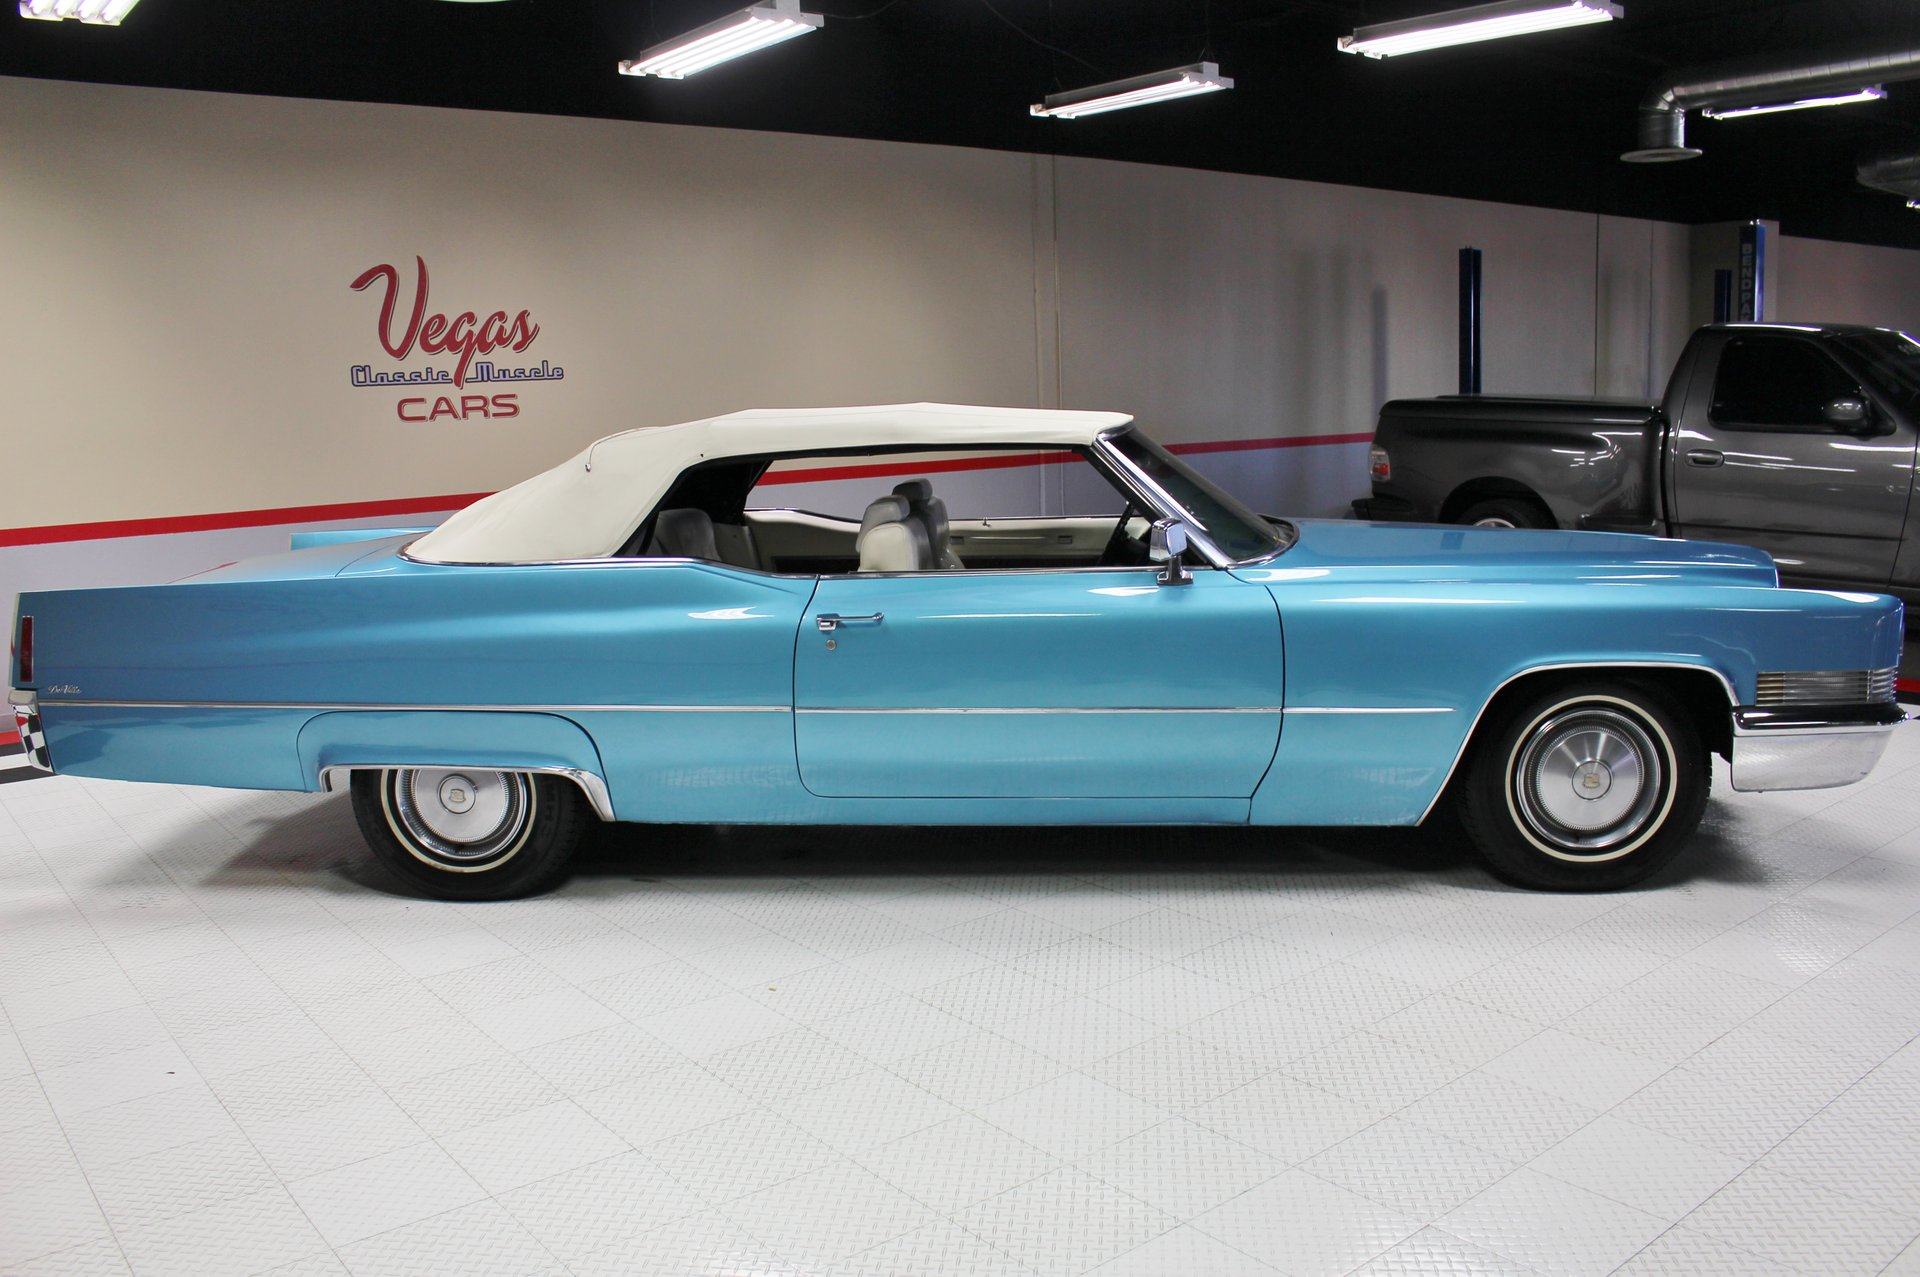 1970 Cadillac DeVille Convertible | Classic Cars & Muscle